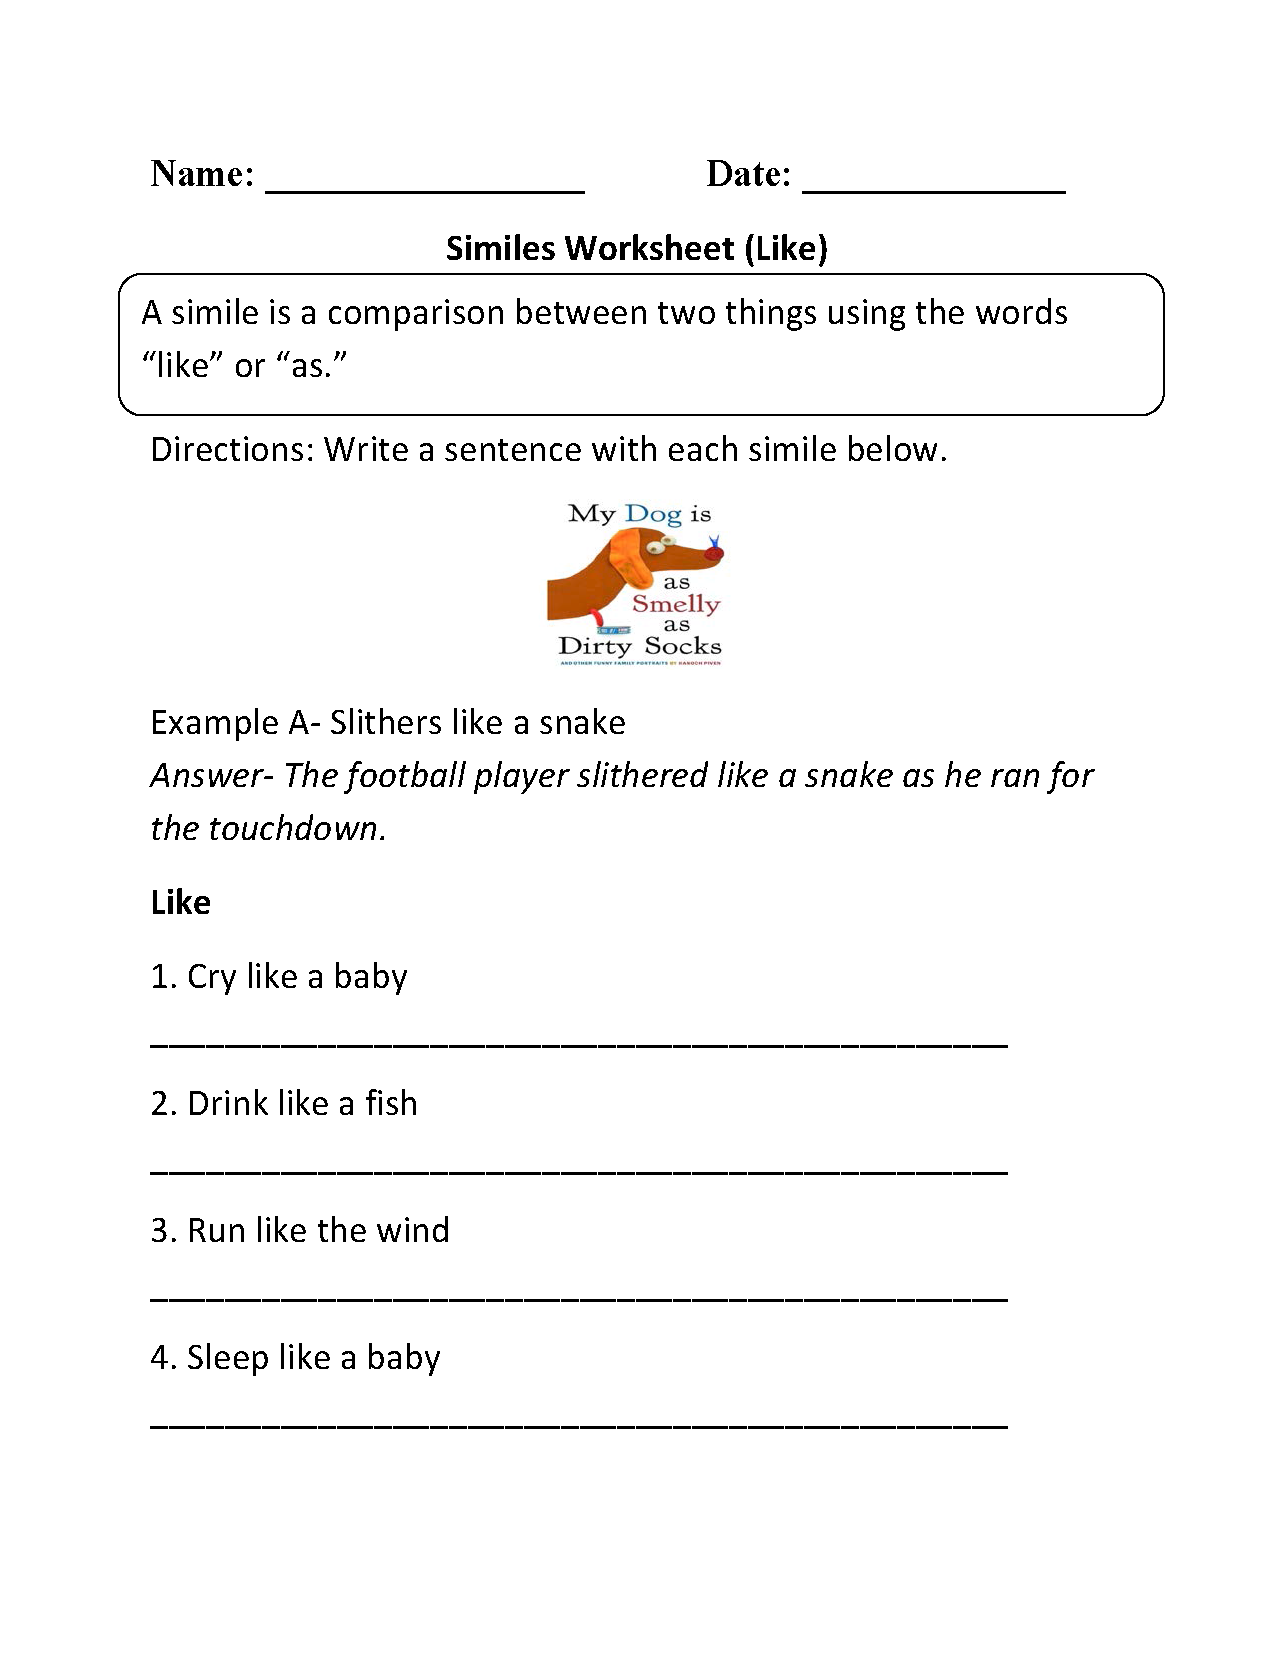 Like Similes Worksheet